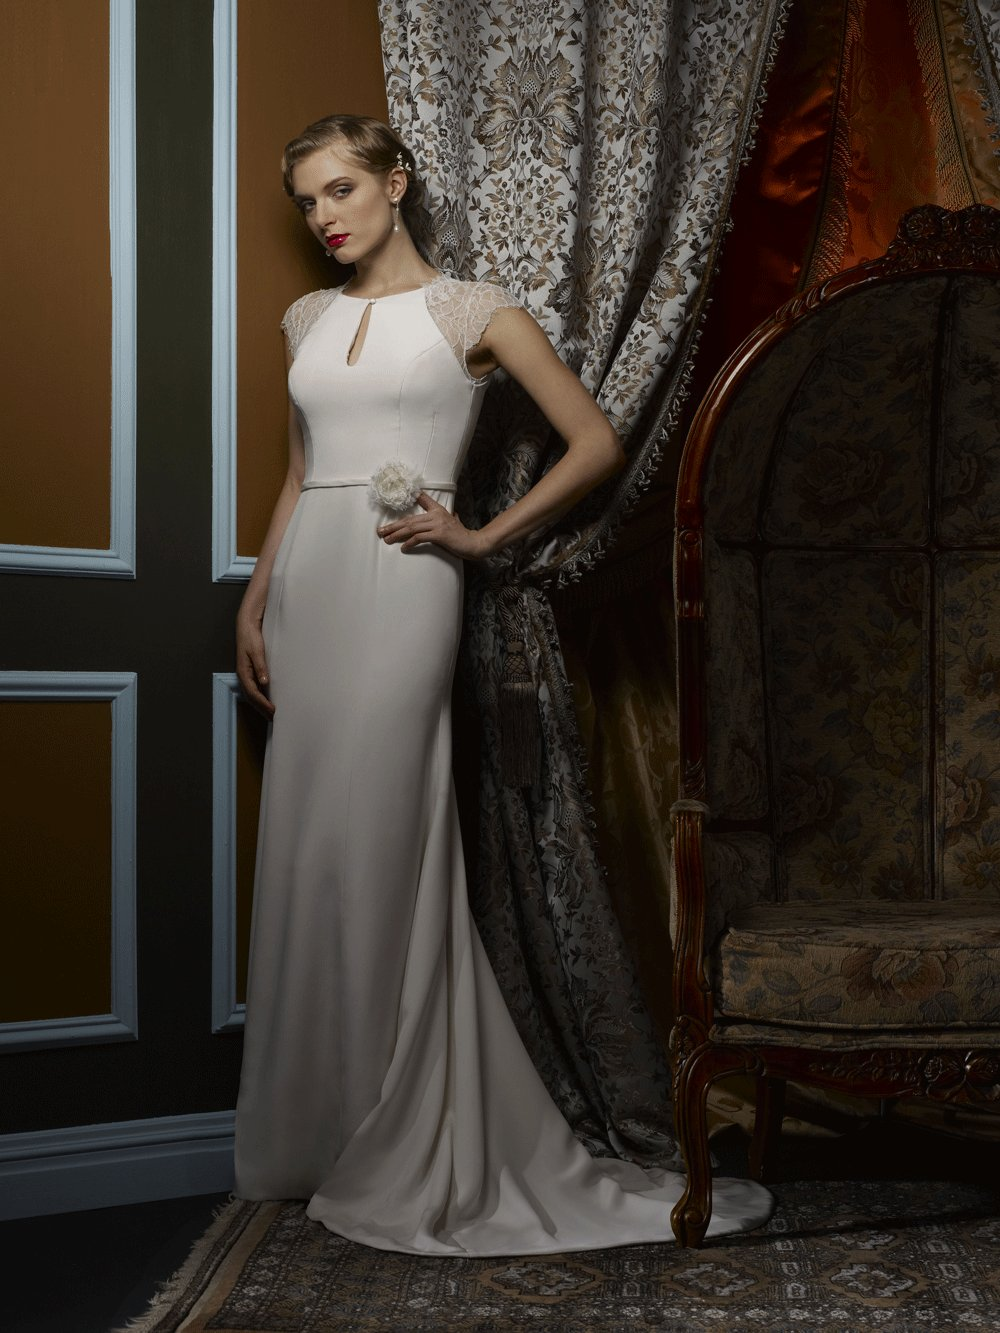 Wedding-dress-by-birnbaum-and-bullock-2013-bridal-sonia.full